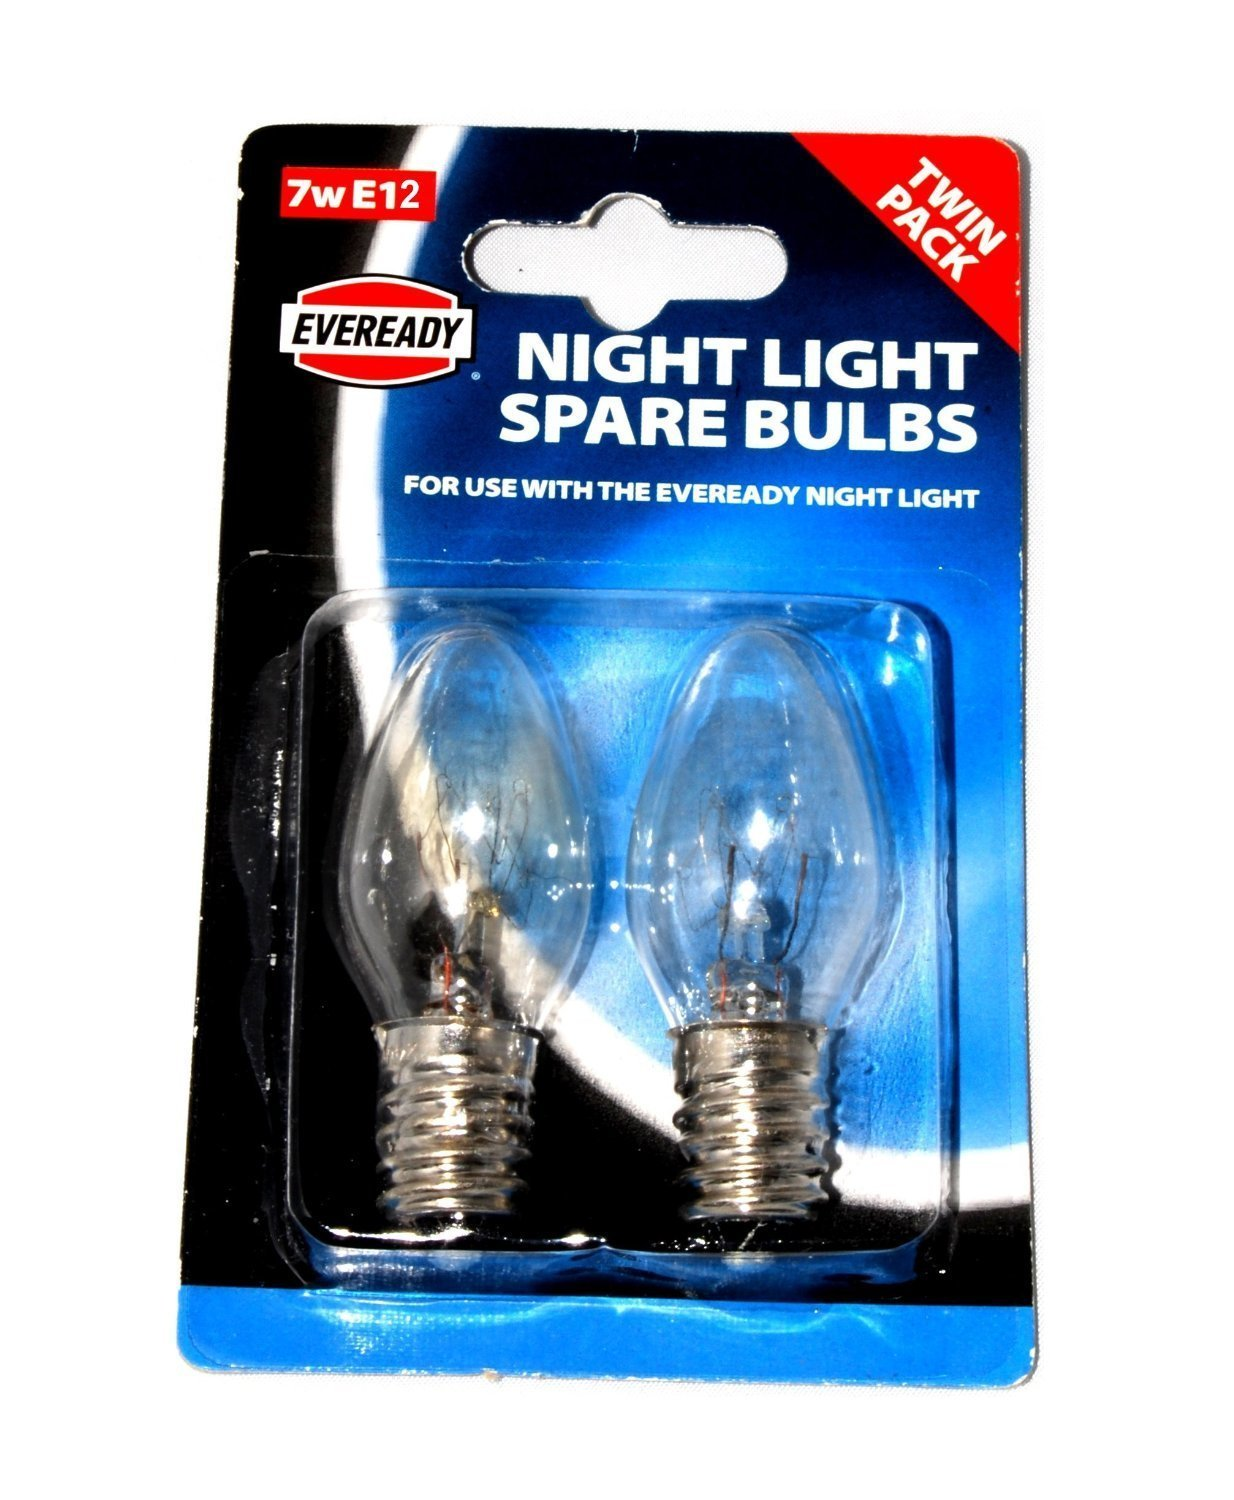 Twin Pack Eveready Night Light Spare Bulbs E12 12mm Thread Build A Bulb Circuit Science The Lab Diameter 7w 220 240v Ac For Use With See Note